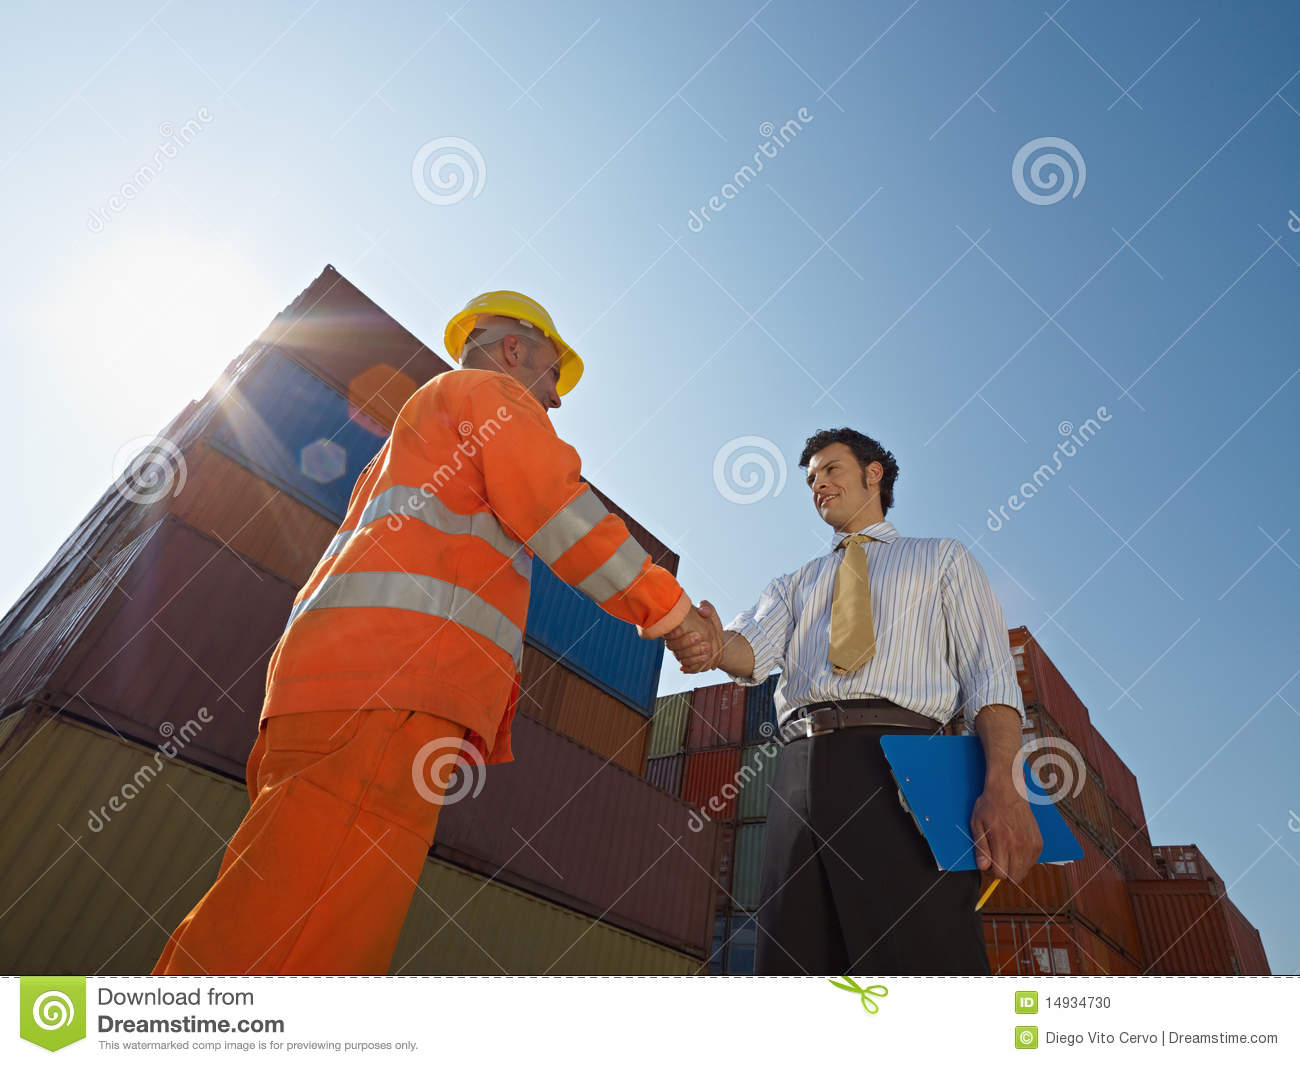 Businessman and worker with cargo containers